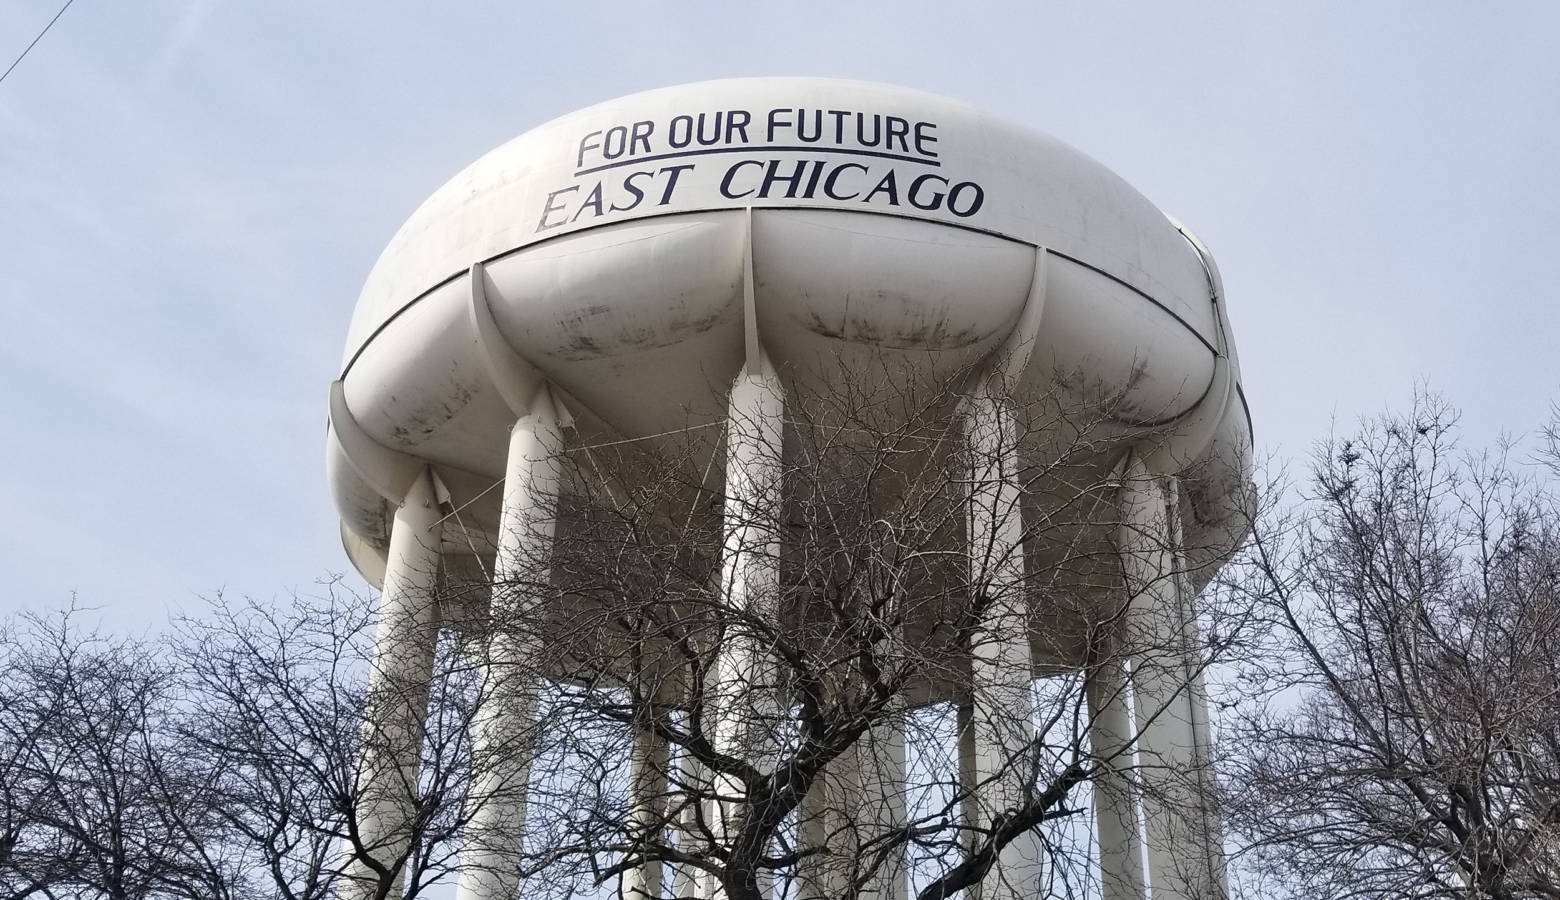 East Chicago residents get their water from Lake Michigan, but EPA officials say they could decided to clean up any contamination in the groundwater to drinking water standards. (Samantha Horton/IPB News)